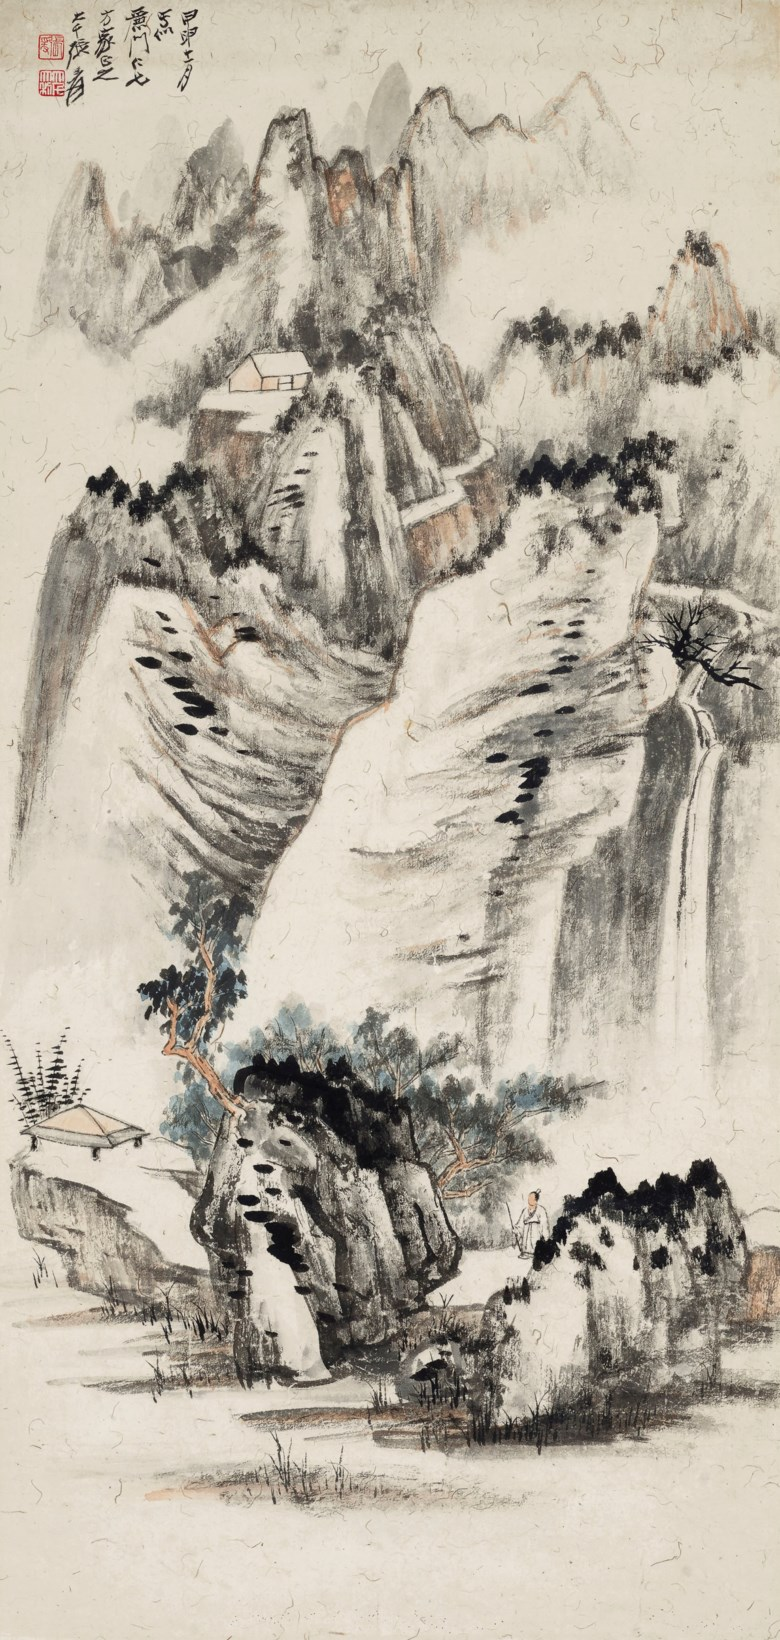 Zhang Daqian (1899-1983), Visiting Friends. Scrolled, mounted and framed, ink on paper. 34¾ x 15  in (88.5 x 38.3 cm). Estimate $75,000-90,000. Offered in Fine Chinese Paintings on 19 March 2019 at Christie's in New York